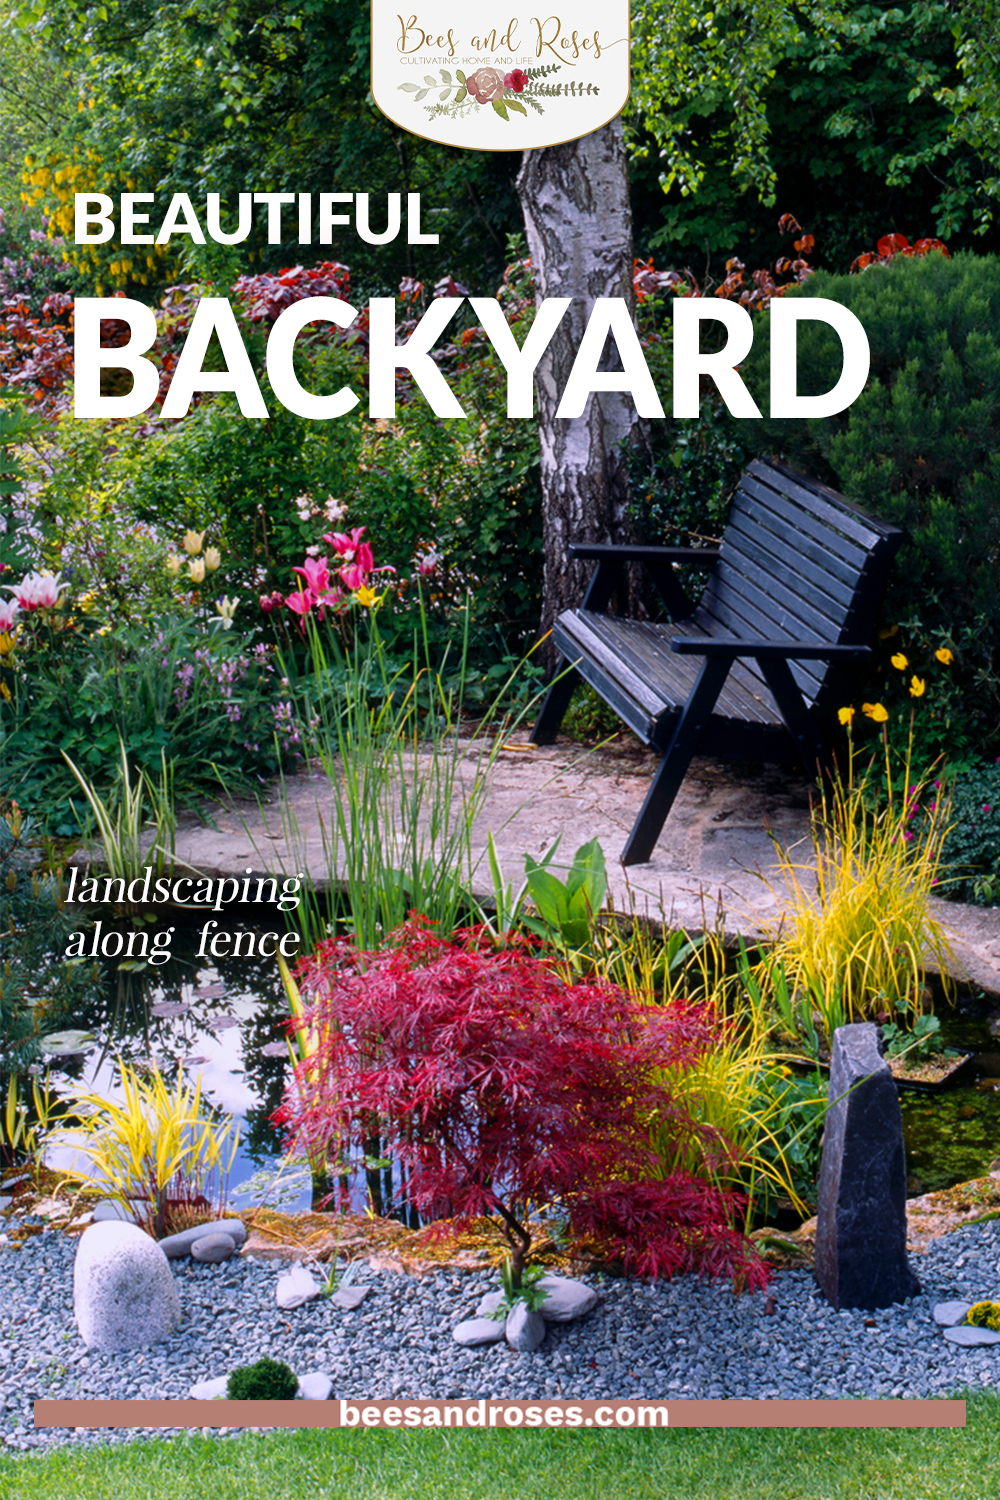 Fences are crucial for backyard privacy but they can be tricky to landscape around. But not anymore, check out these awesomely easy ways to landscape along your fence. #gardening #landscaping #beesandrosesblog